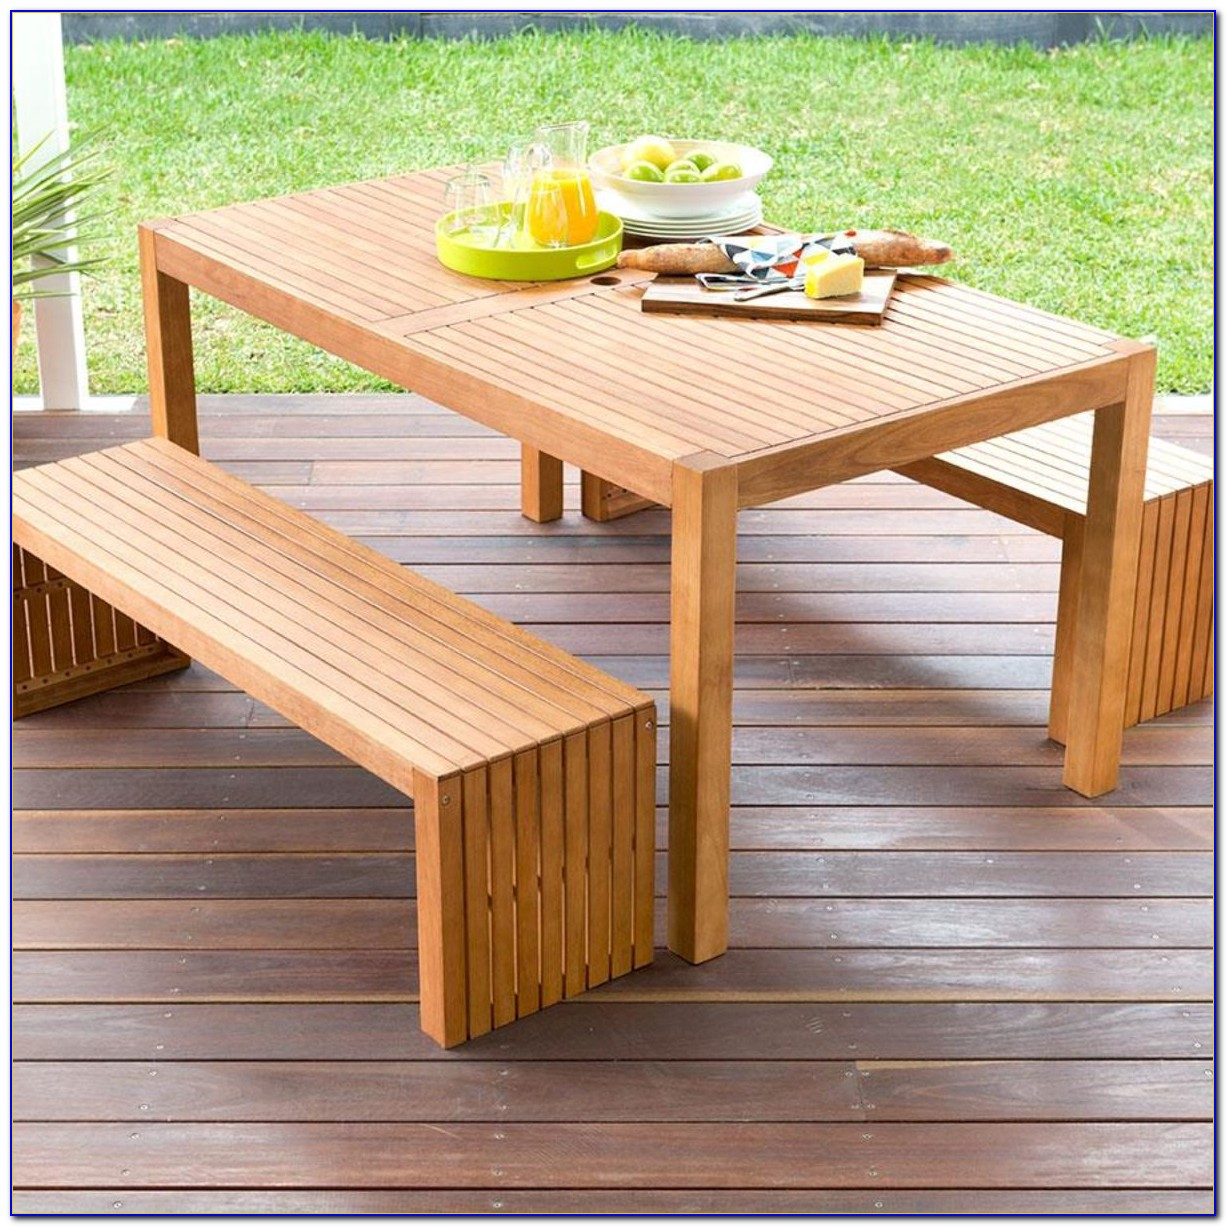 Outdoor Wooden Table And Bench Set